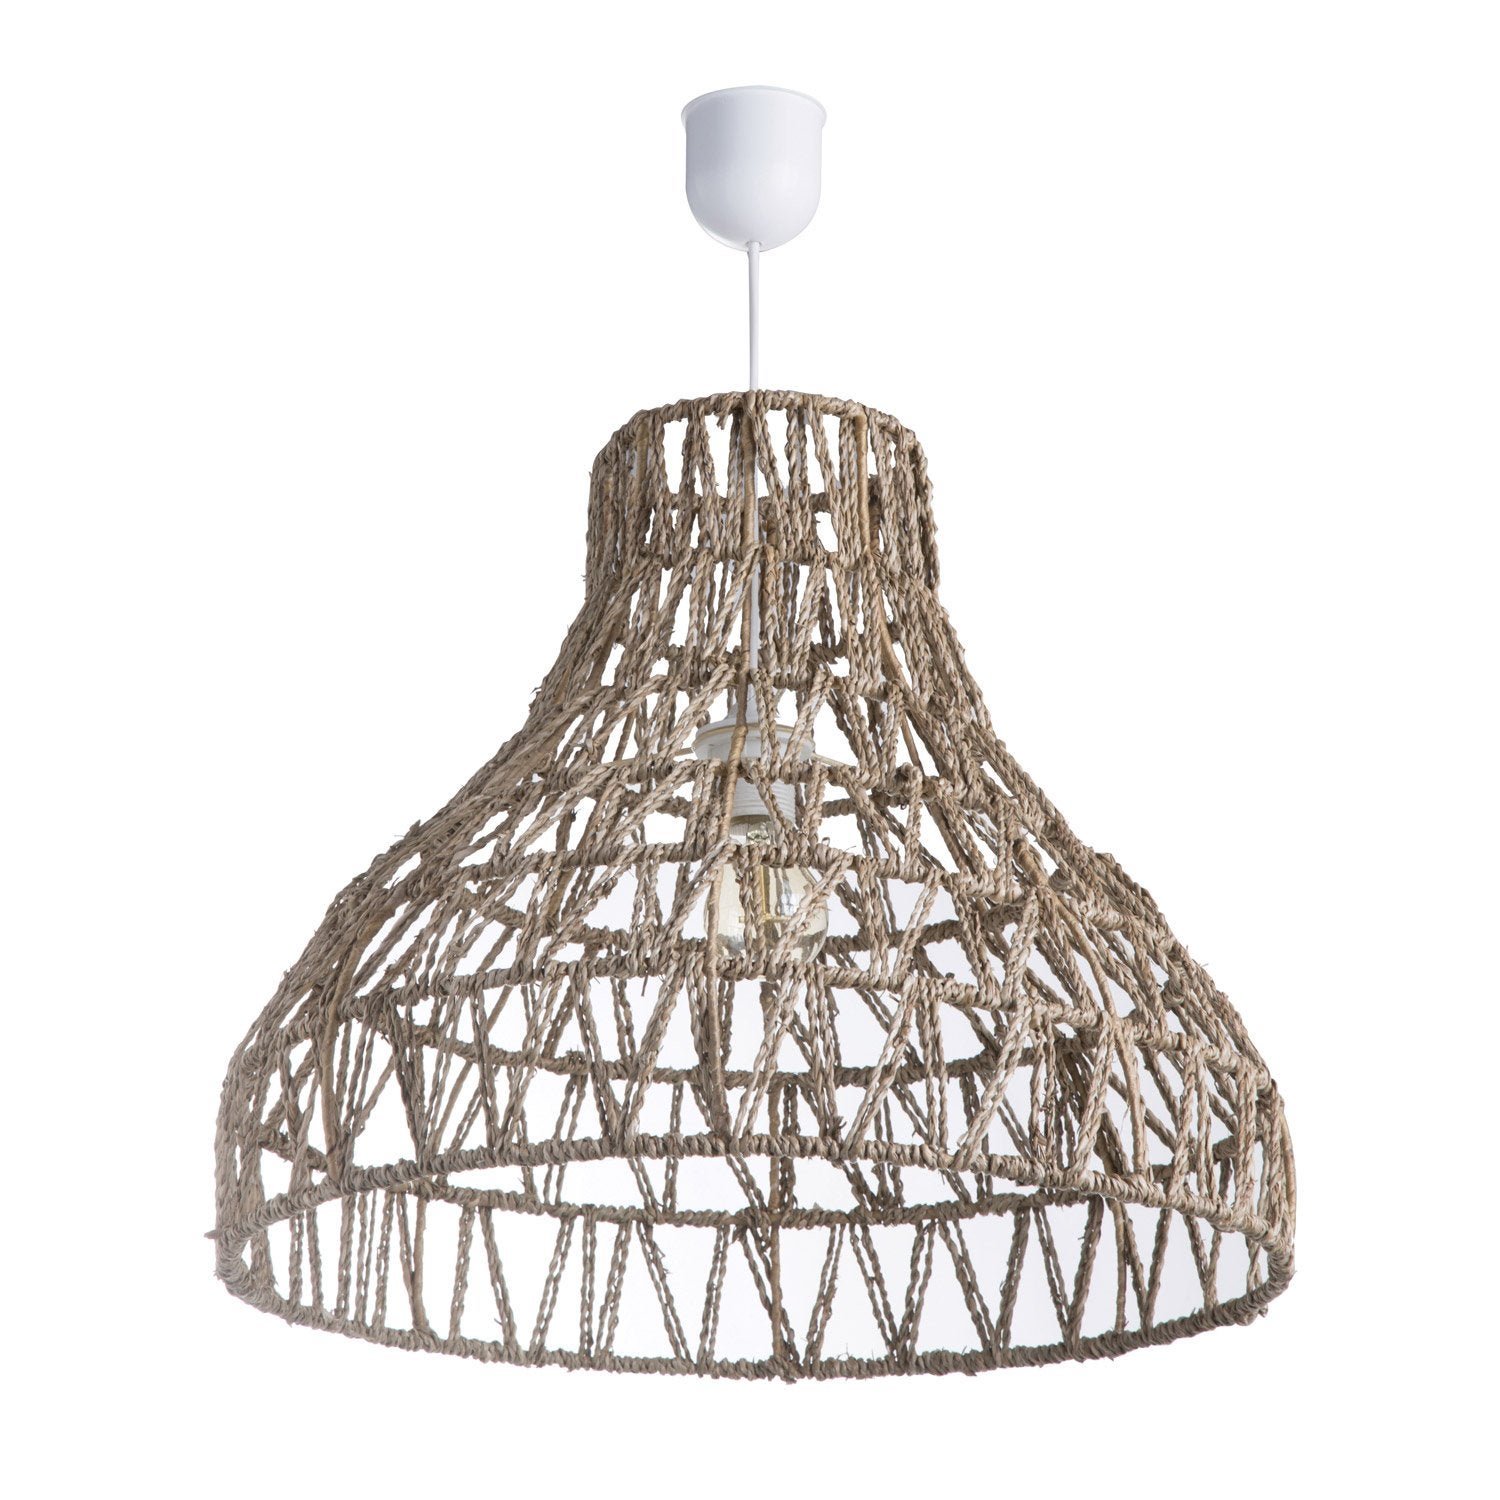 Suspension, E27 bohème Satna rotin naturel 1 x 60 W LUSSIOL